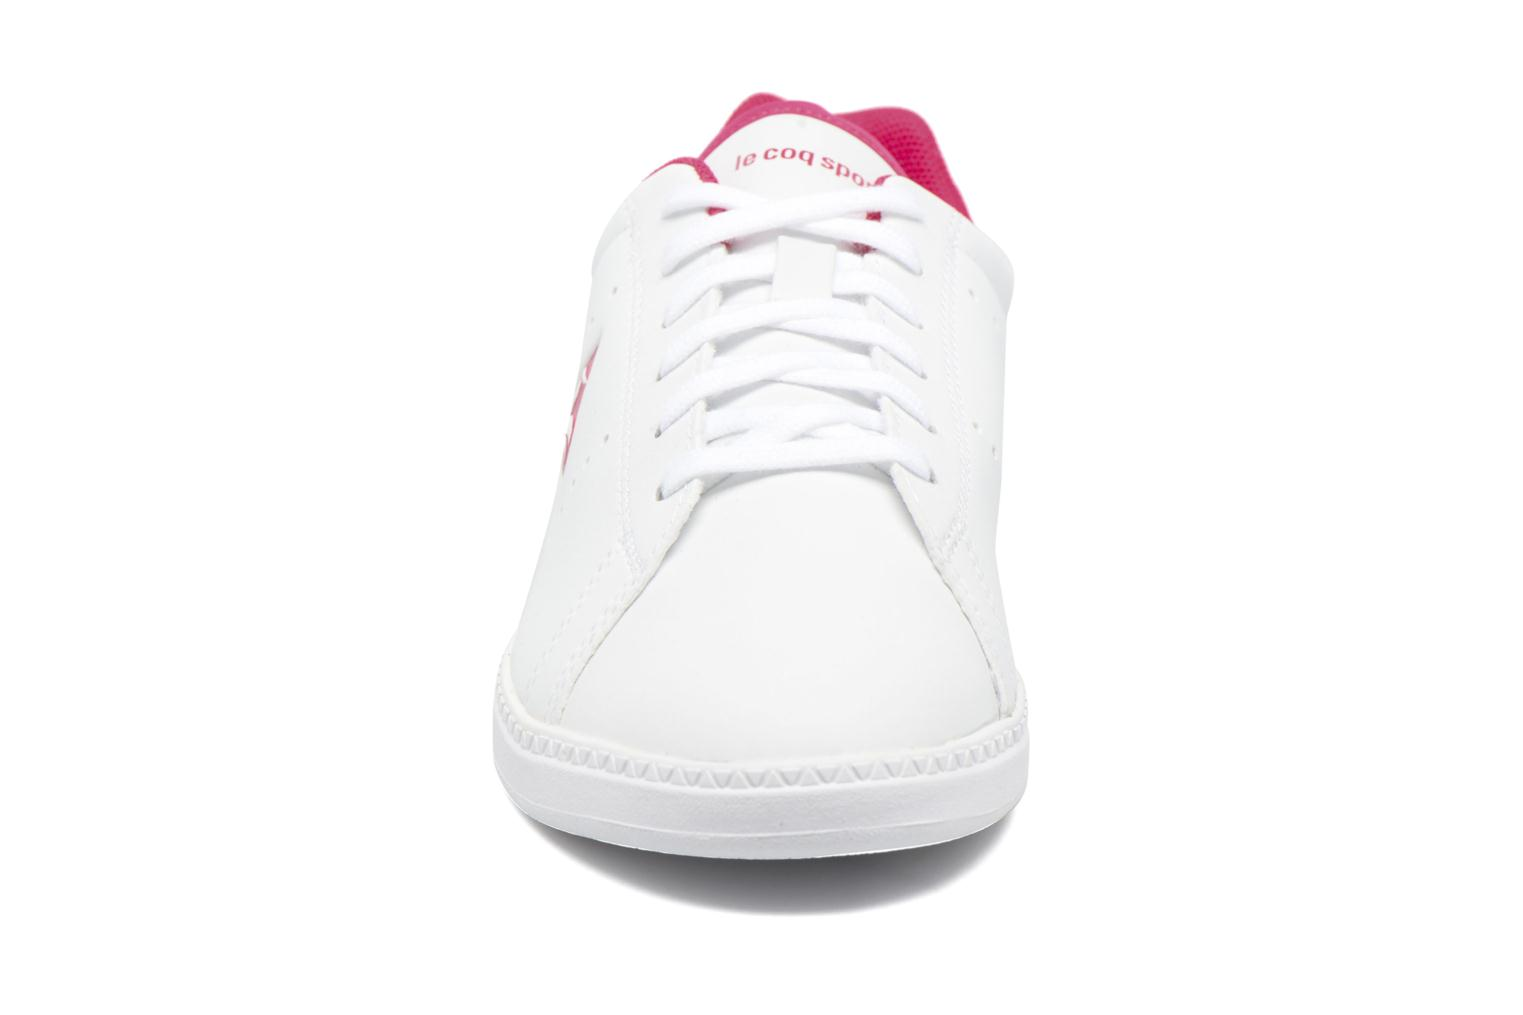 Courtone Gs optical white/rose red